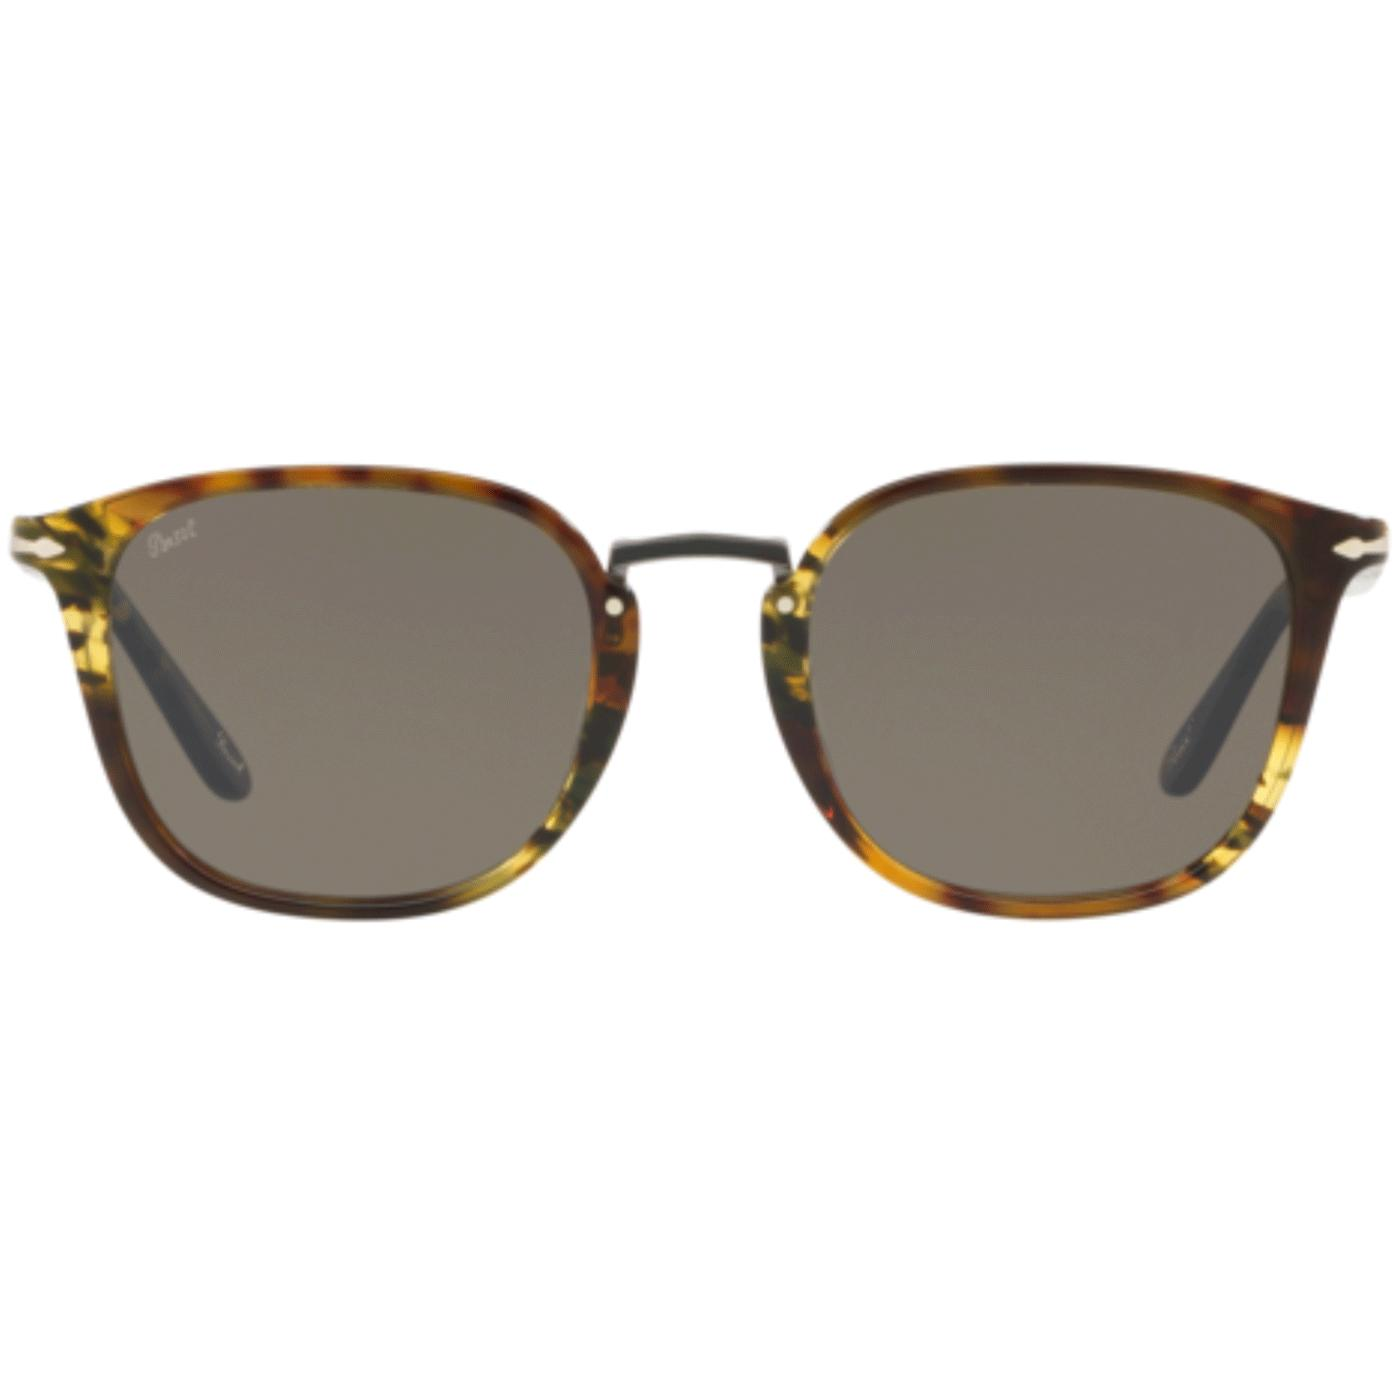 Combo Evolution PERSOL Men's Retro Sunglasses